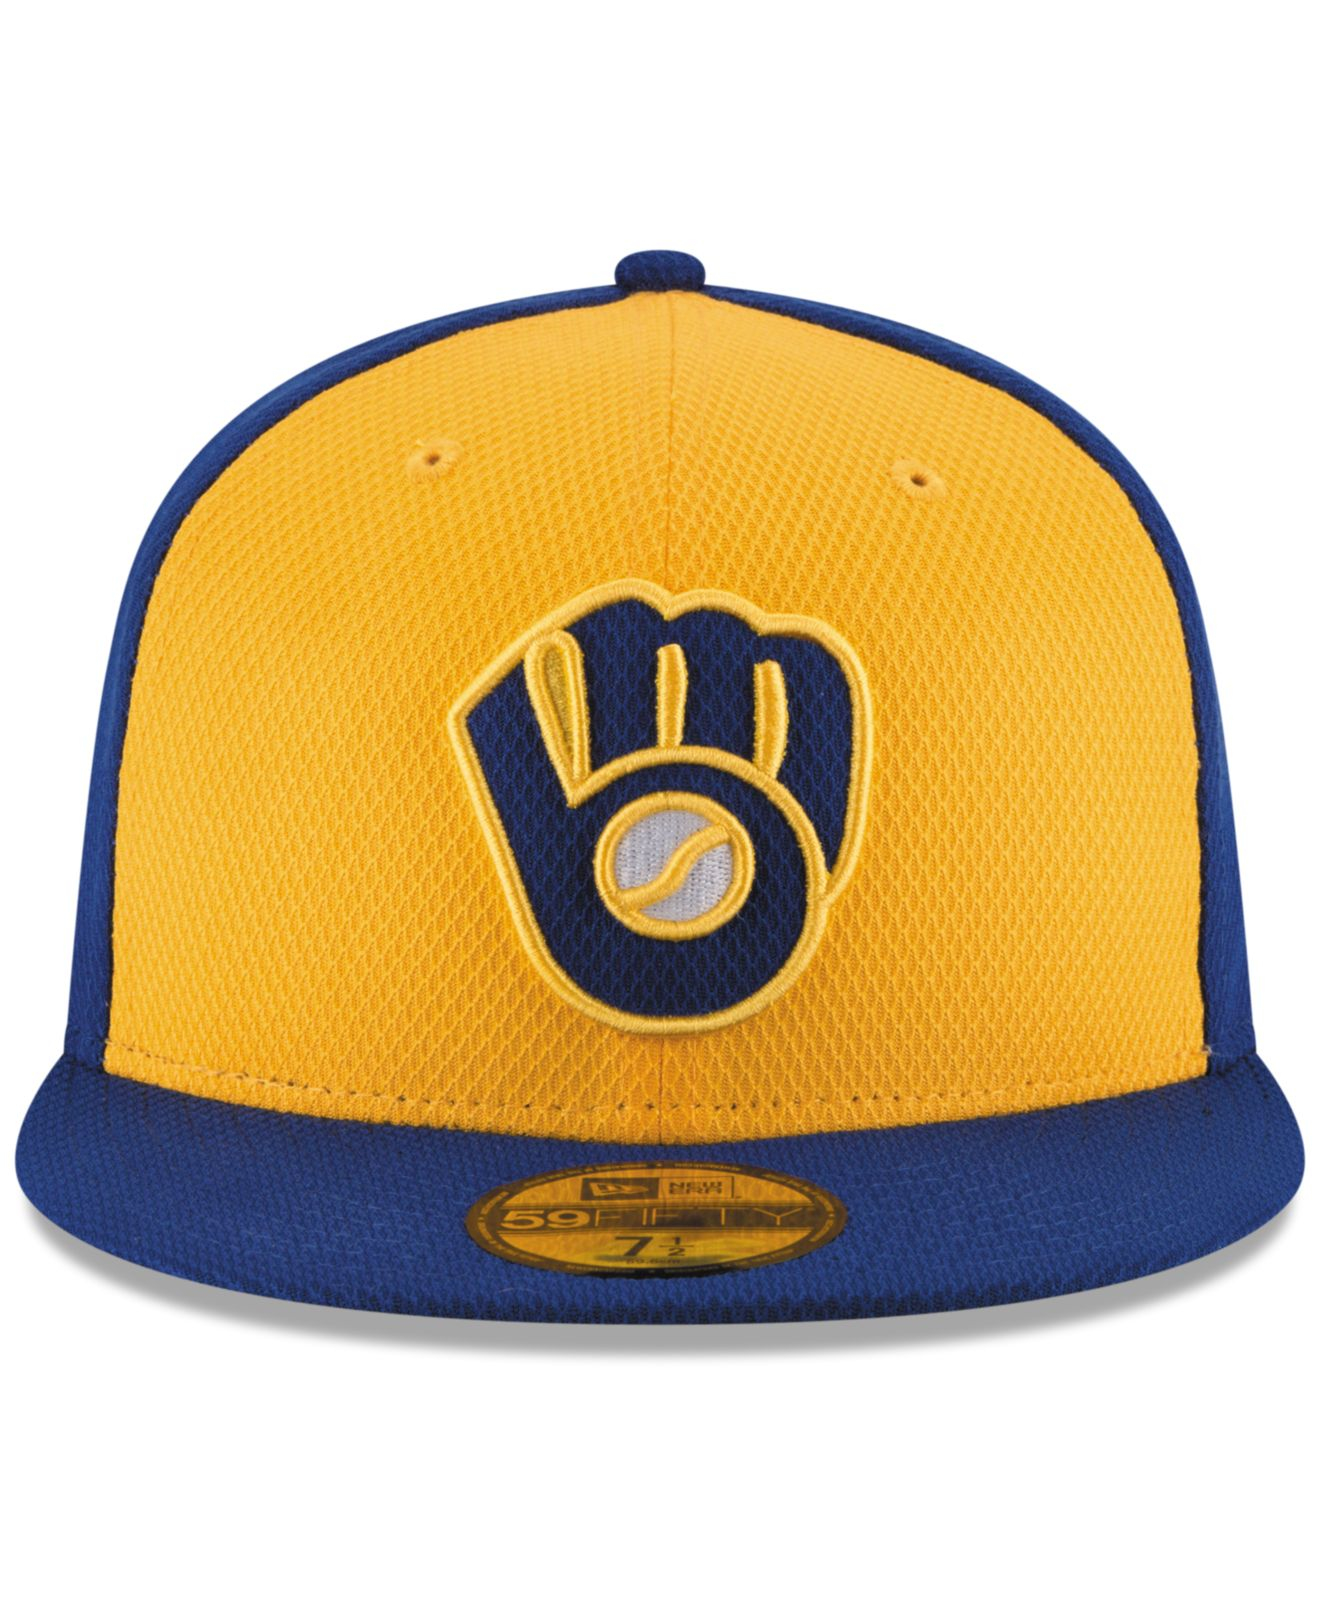 cheap for discount 2694f 15a91 ... sale lyst ktz milwaukee brewers diamond era 59fifty cap in blue for men  63a90 89148